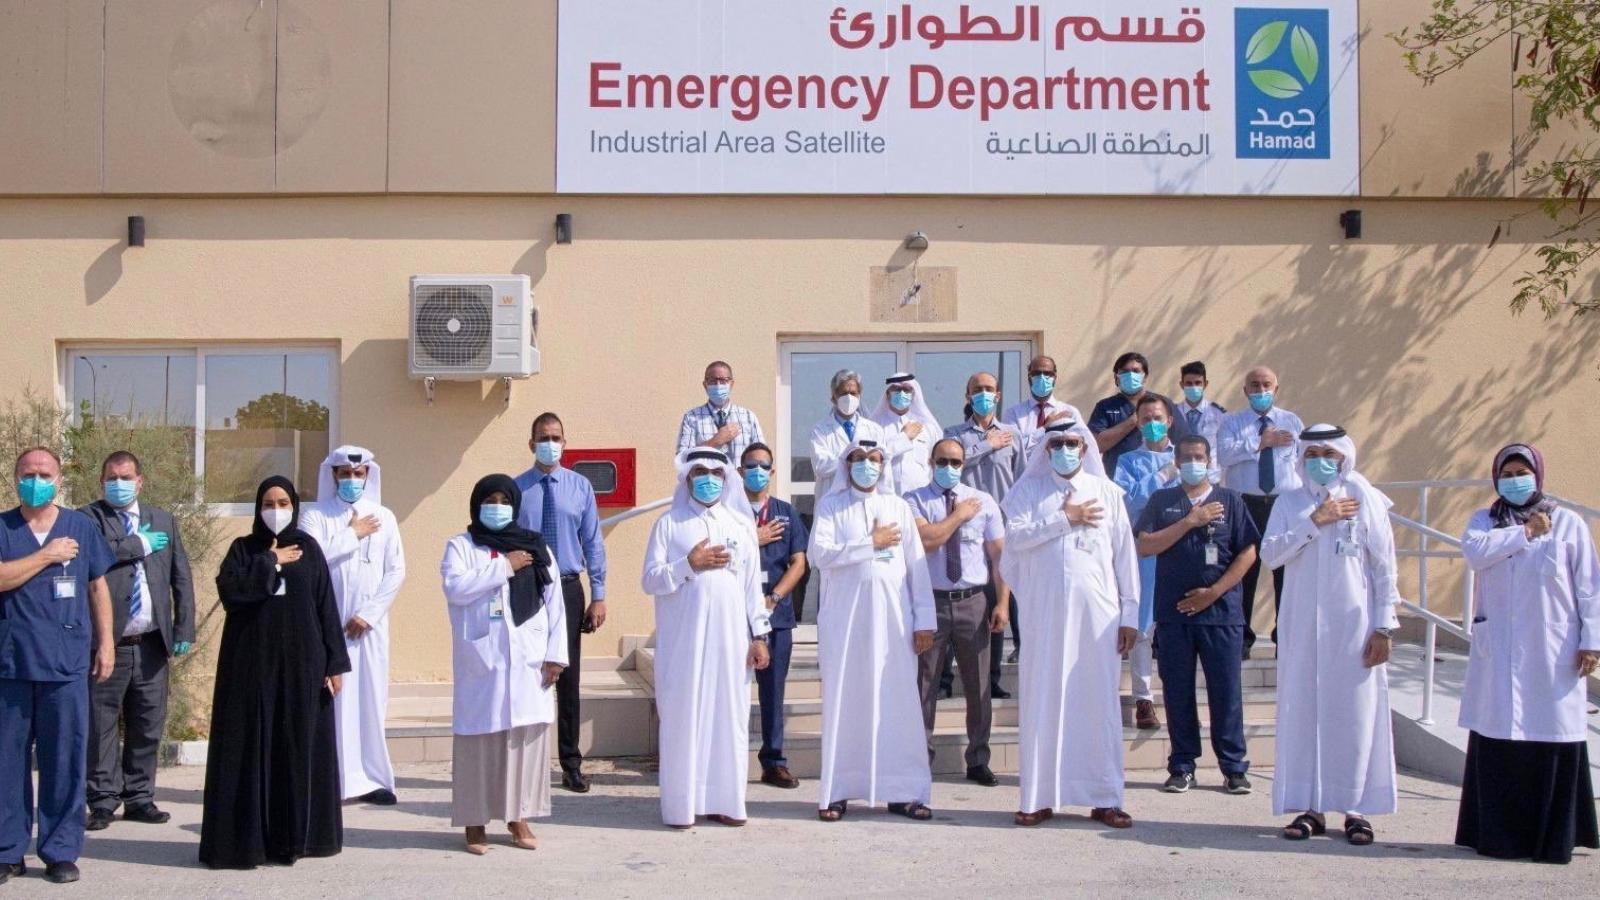 New emergency medical center opens in Industrial Area